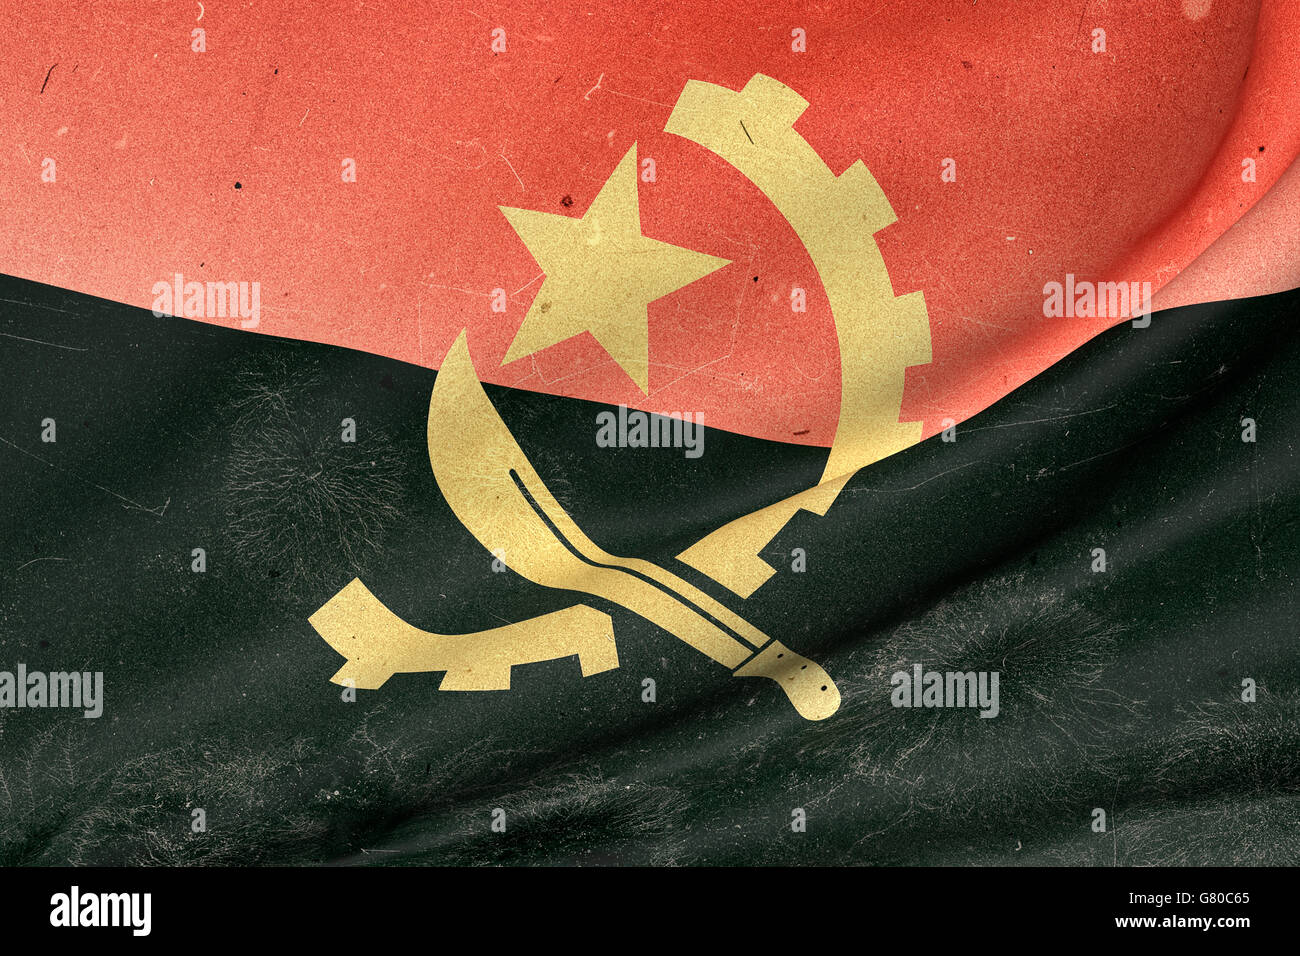 3d rendering of an old and dirty  Republic of Angola flag waving - Stock Image